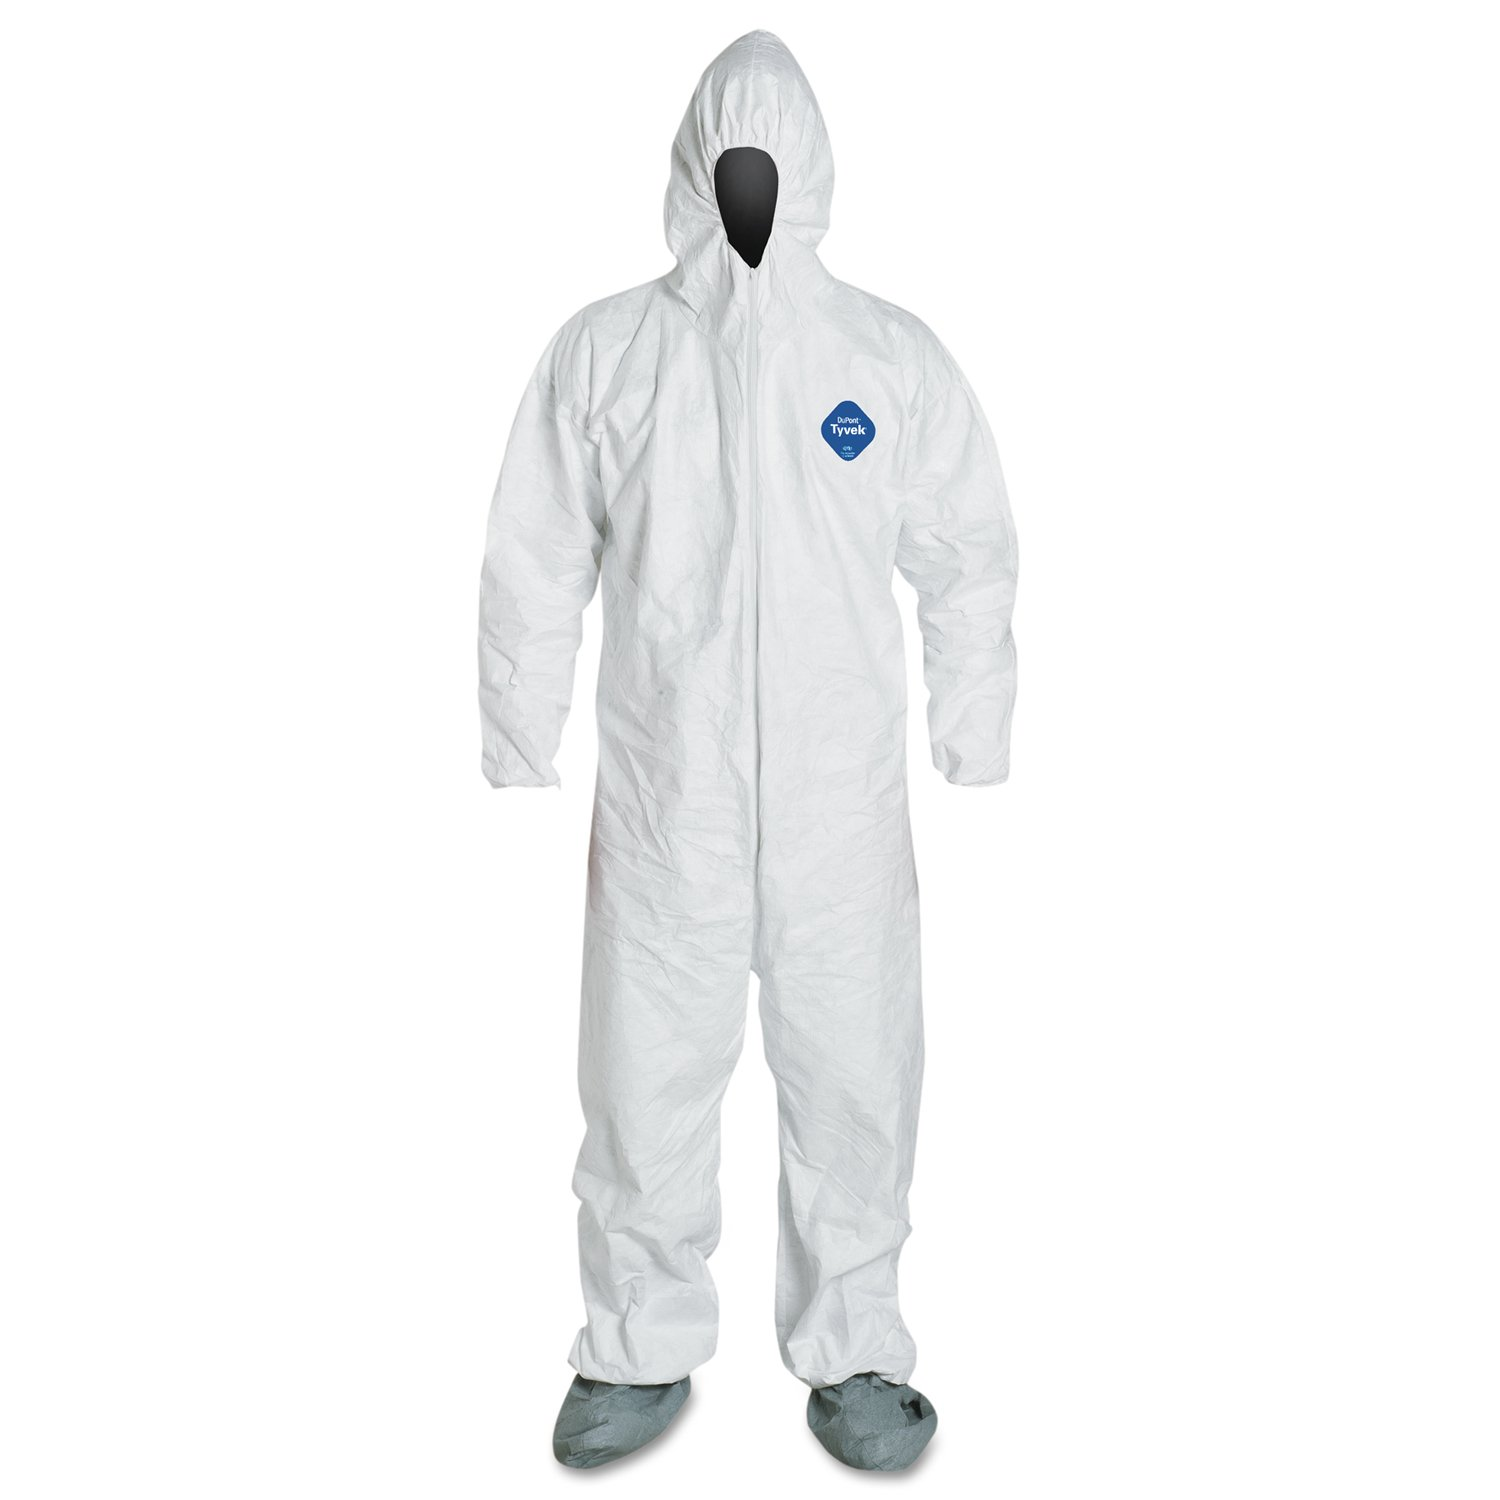 Dupont TY122S-M Tyvek Coveralls with Attached Hood and Boots, Medium, White (Pack of 25)